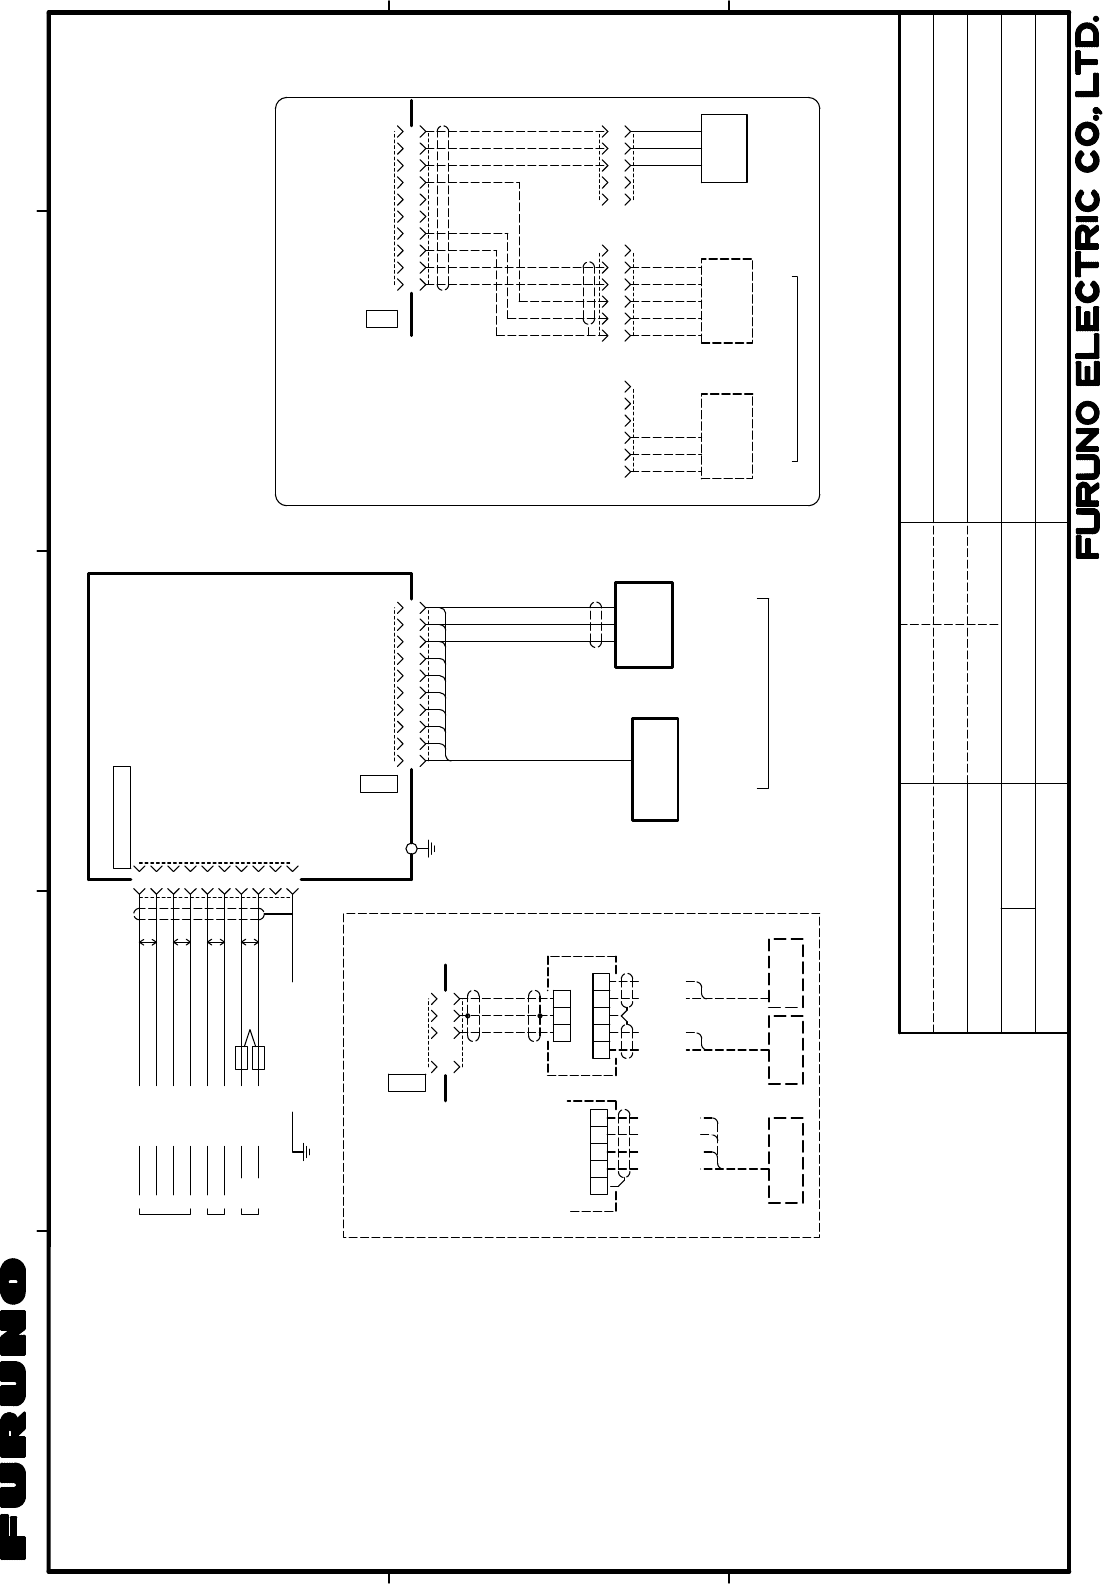 943161b8 387e 474f 9fd0 d2ddb8c1e75f bg37 page 55 of furuno sonar fcv 585 user guide manualsonline com furuno fcv 620 wiring diagram at edmiracle.co